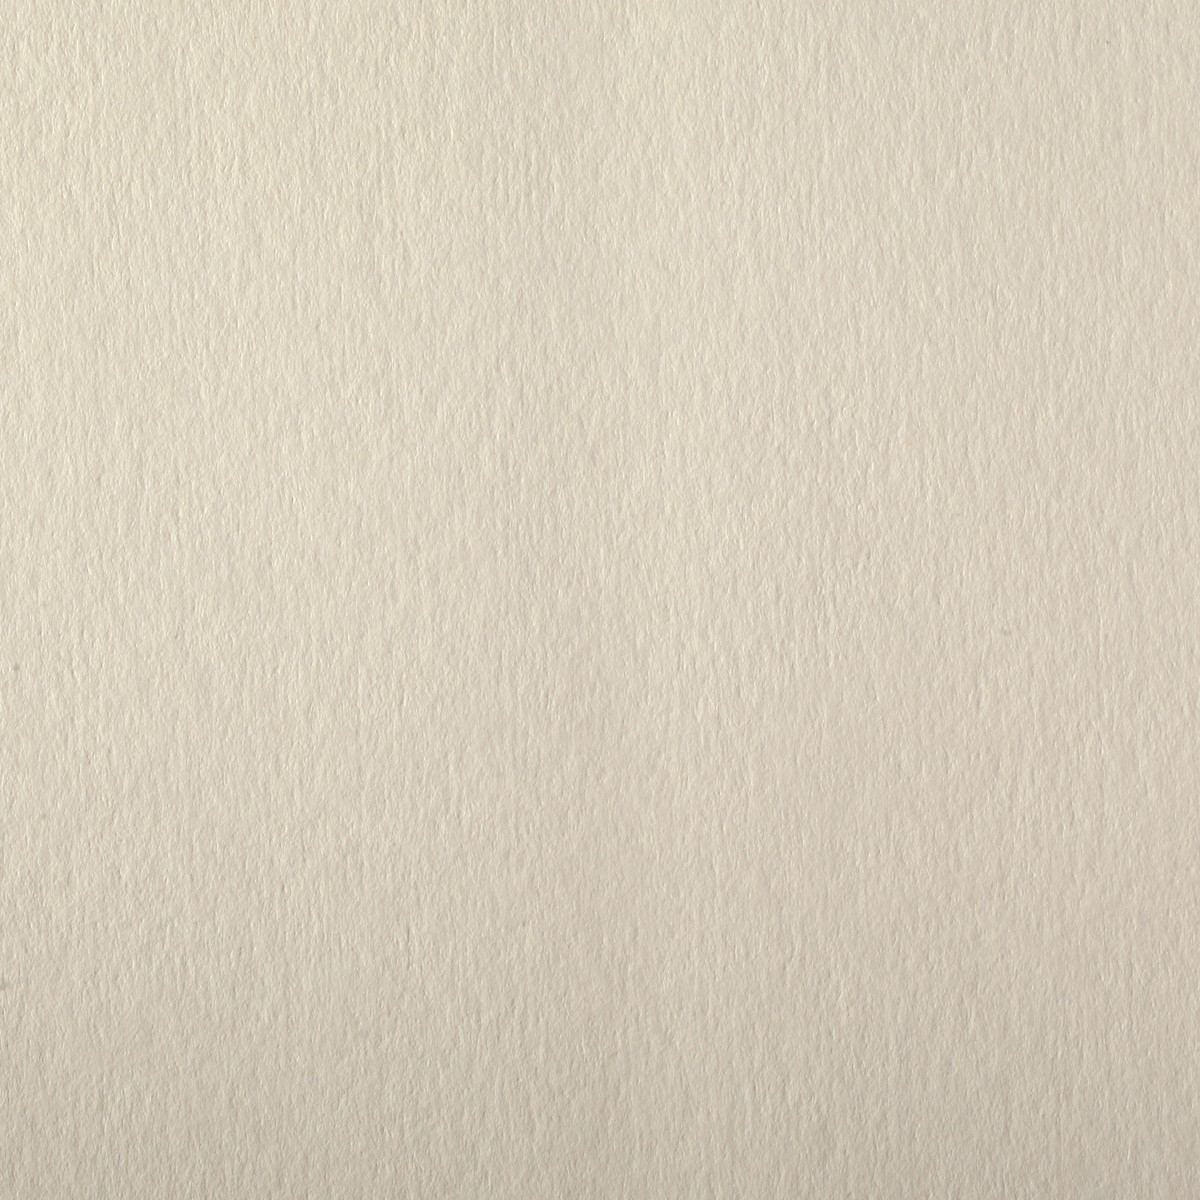 "Colorplan China White 12 1/2"" x 19"" 100# Cover Sheets Pack of 50"